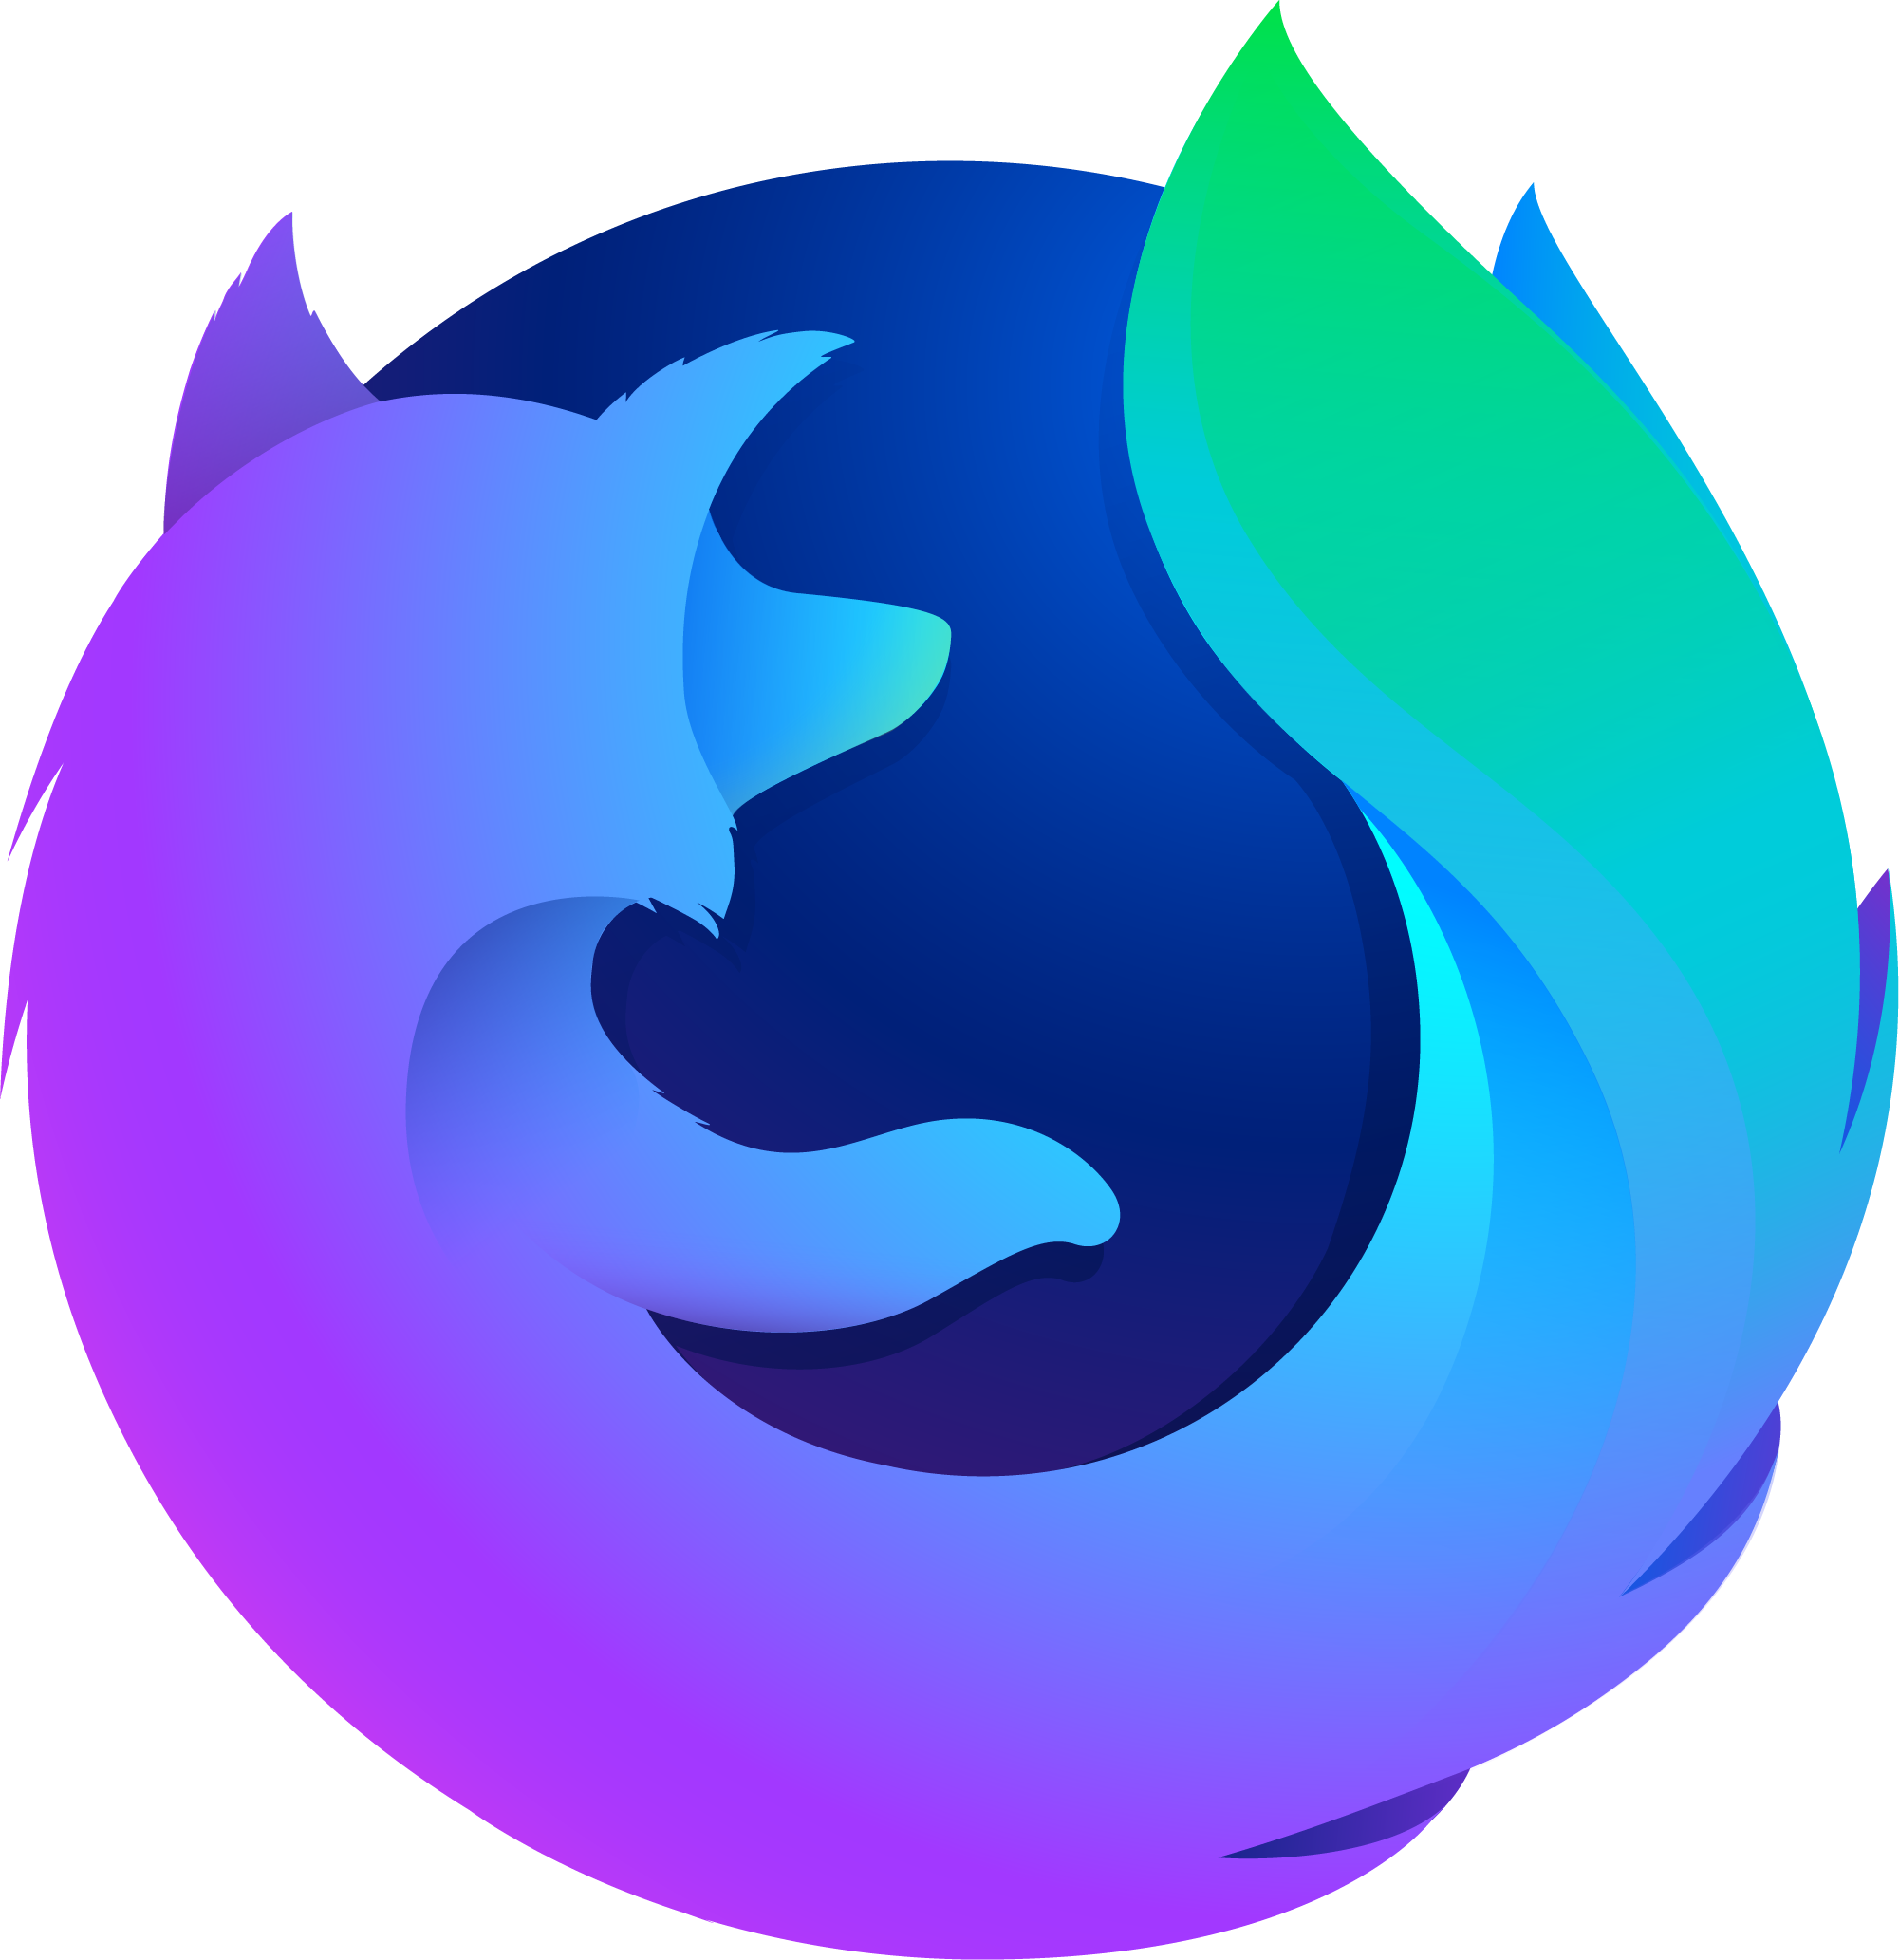 Firefox 60 Nightly